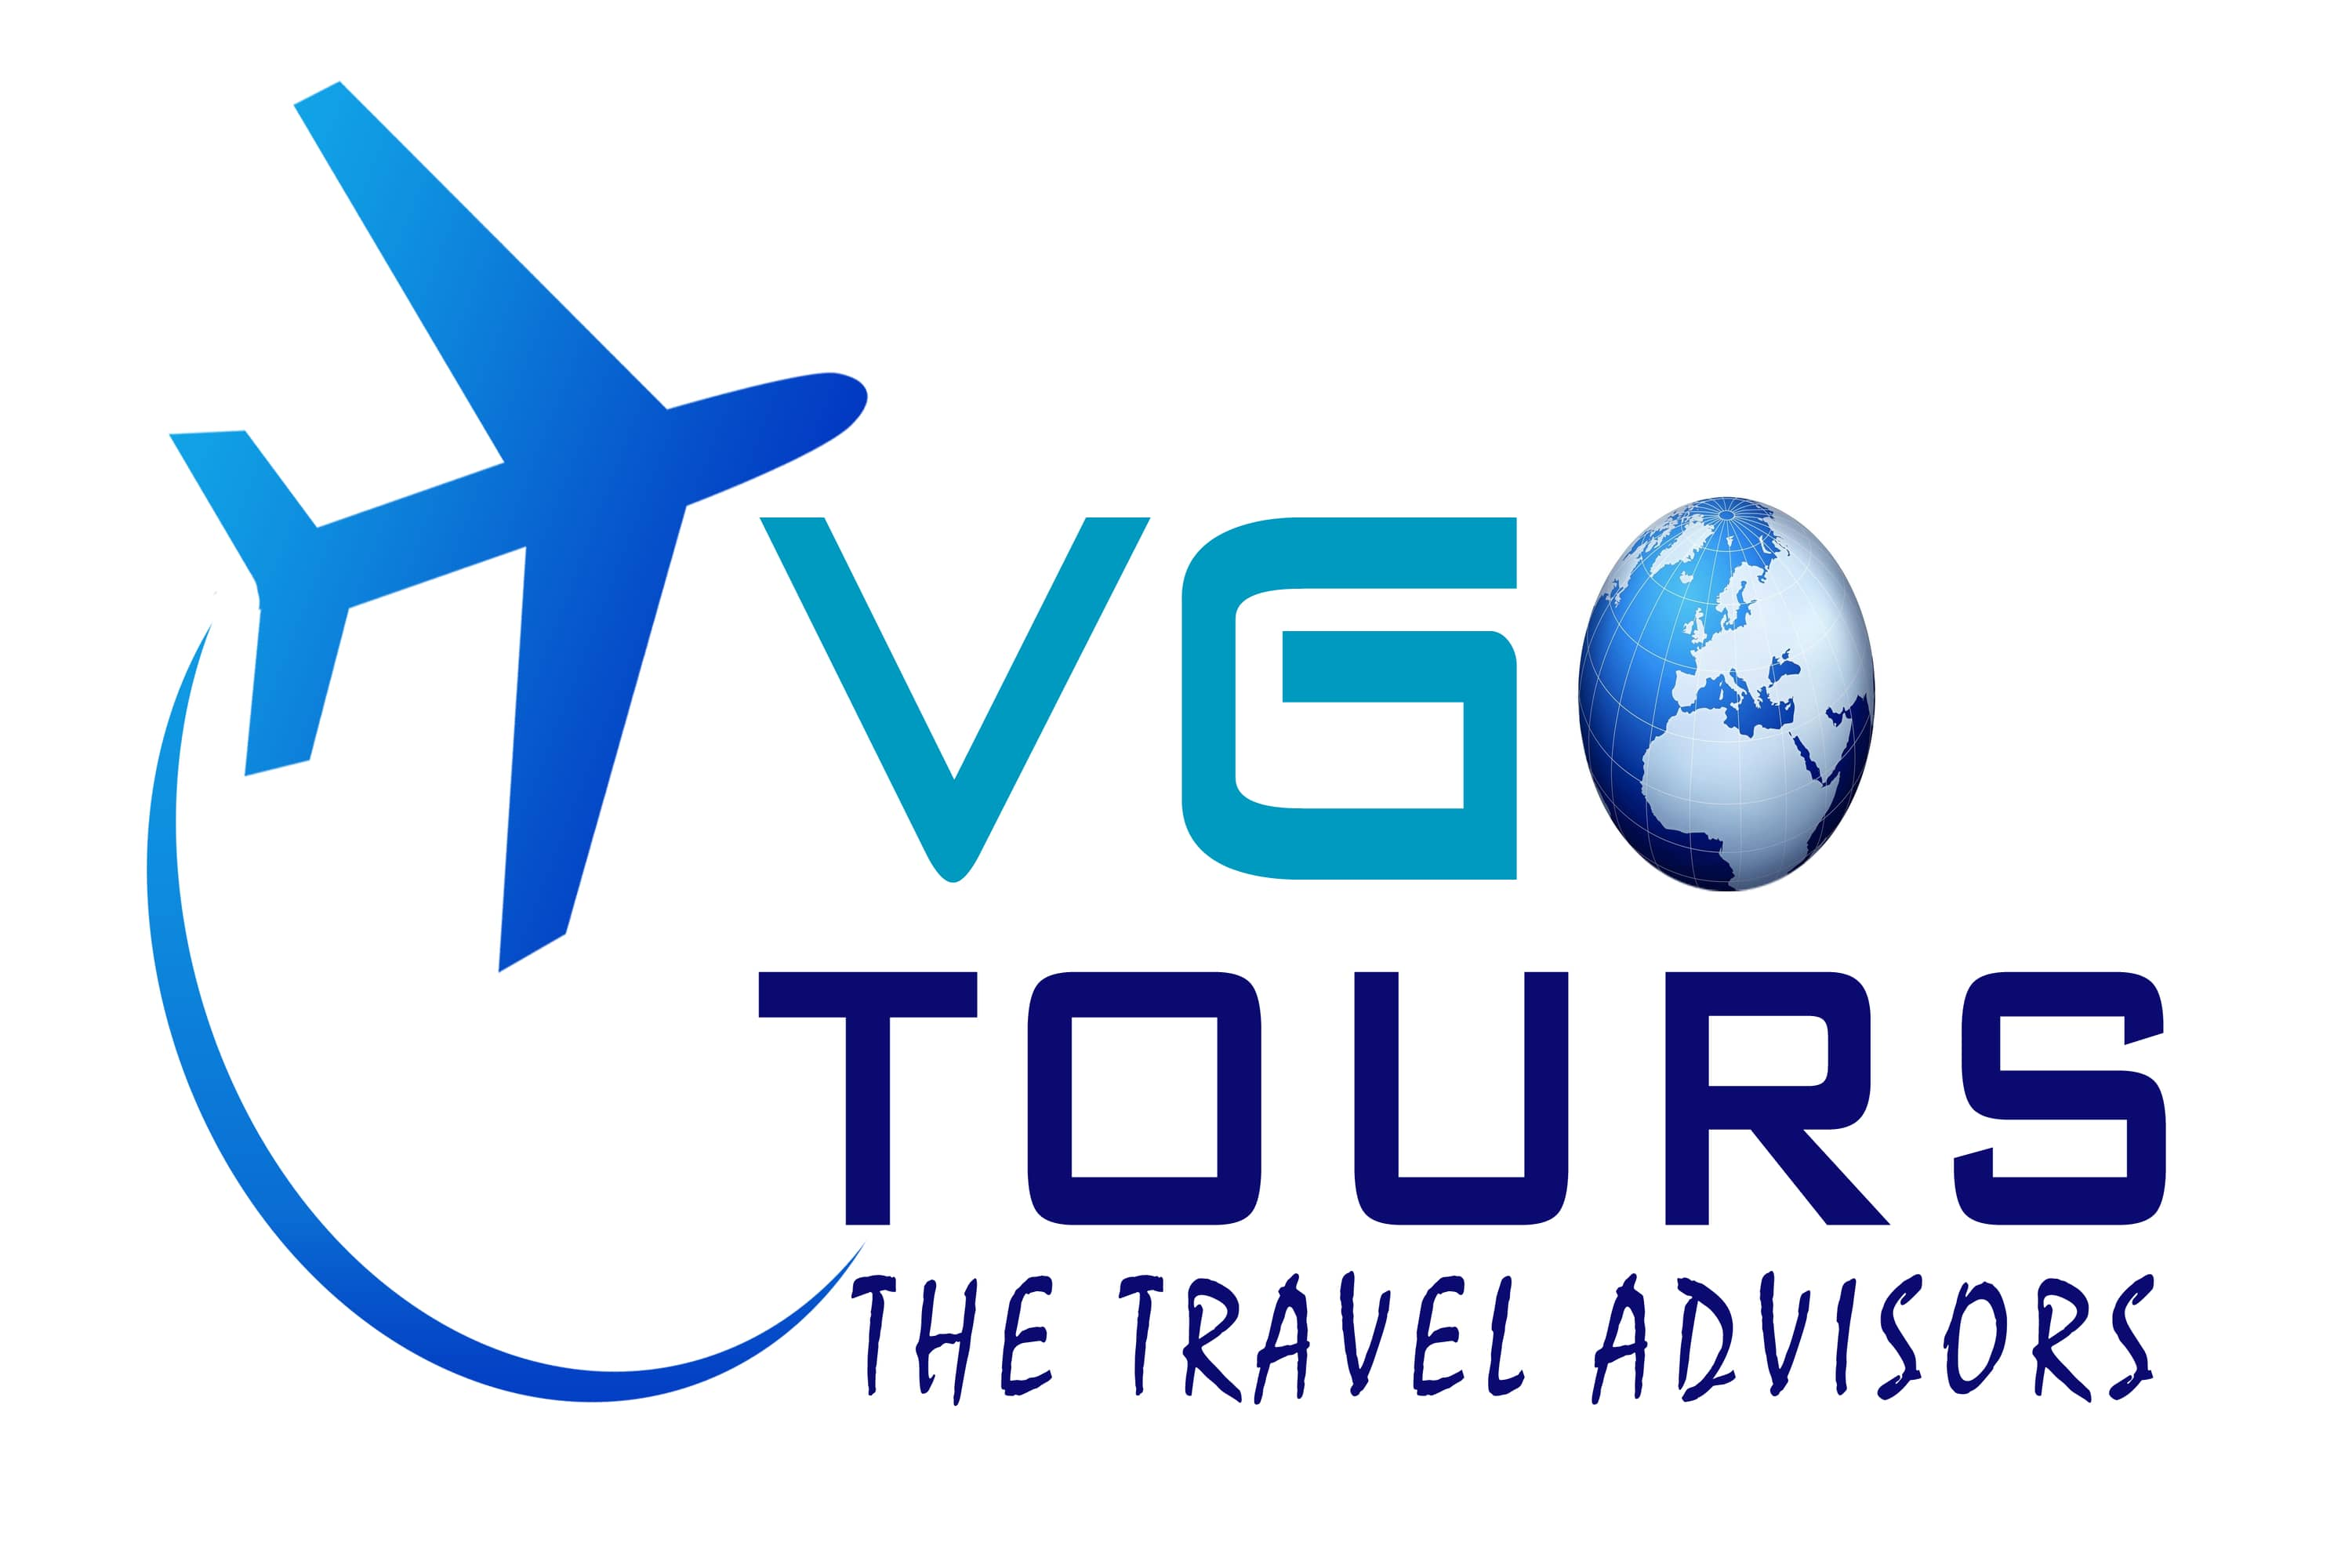 search.vgotours.com